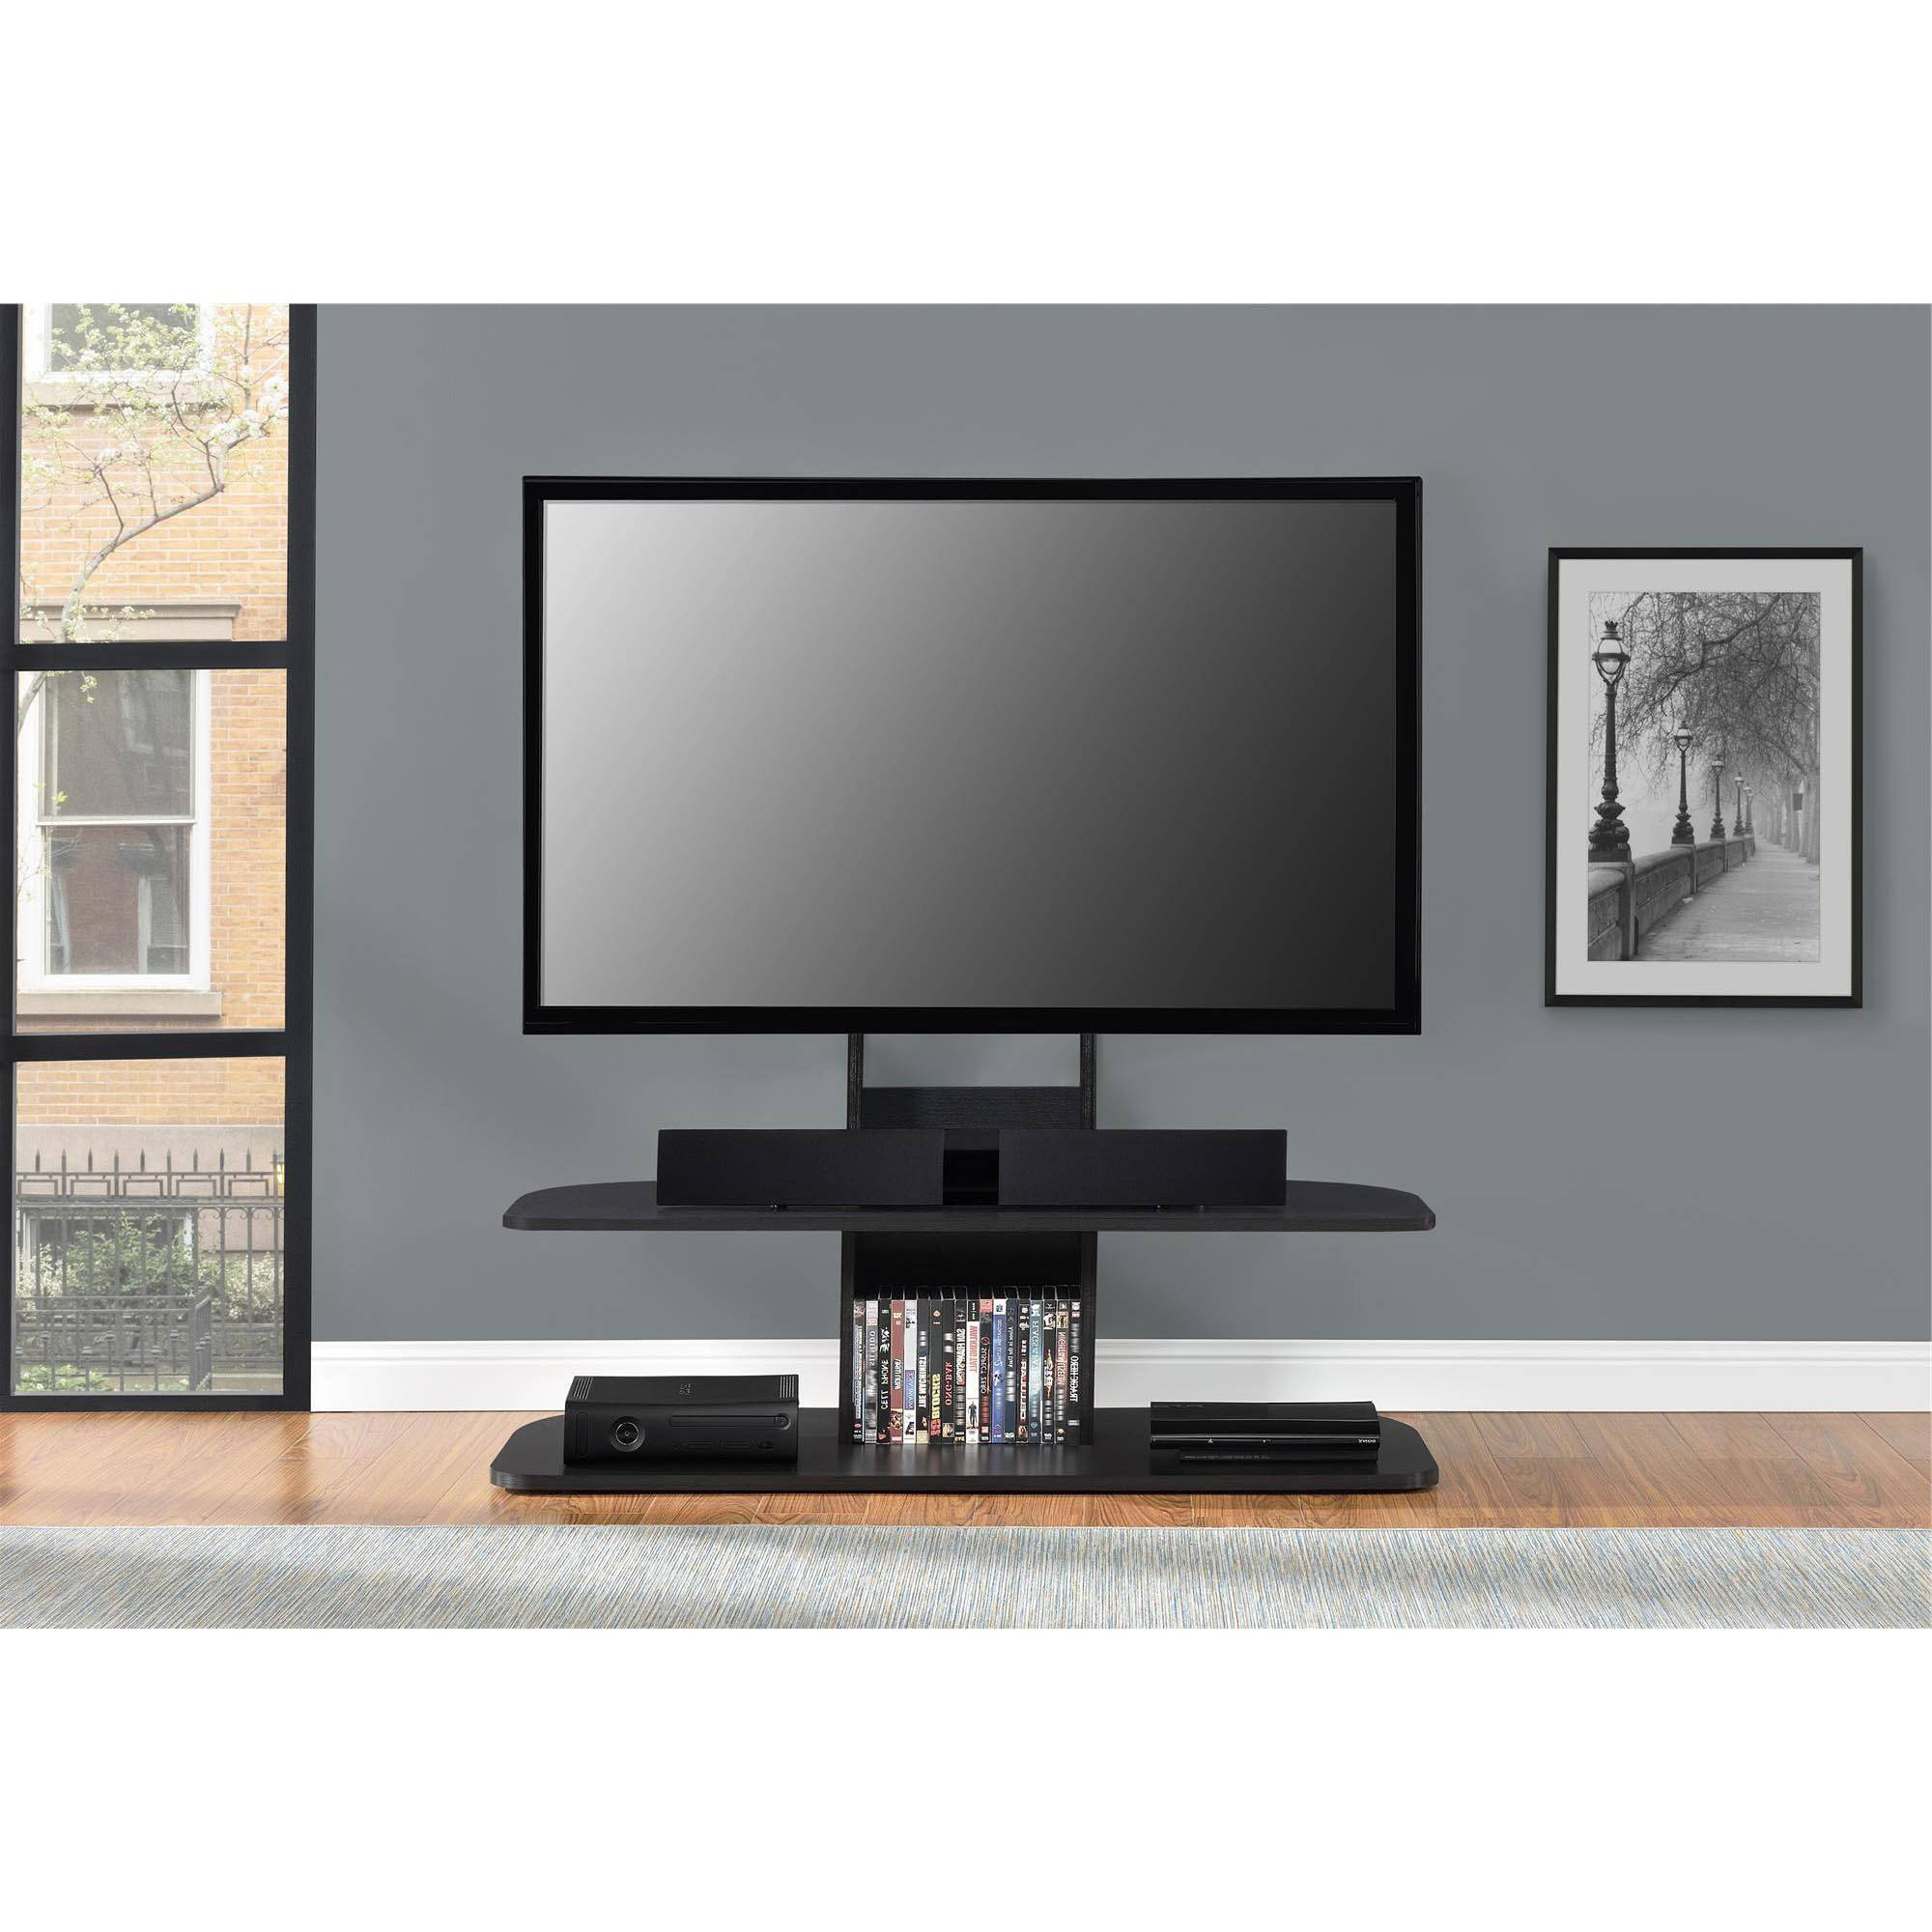 "Popular Ameriwood Home Galaxy Tv Stand With Mount For Tvs Up To 65"" Wide Pertaining To Tv Stands For 43 Inch Tv (Gallery 14 of 20)"